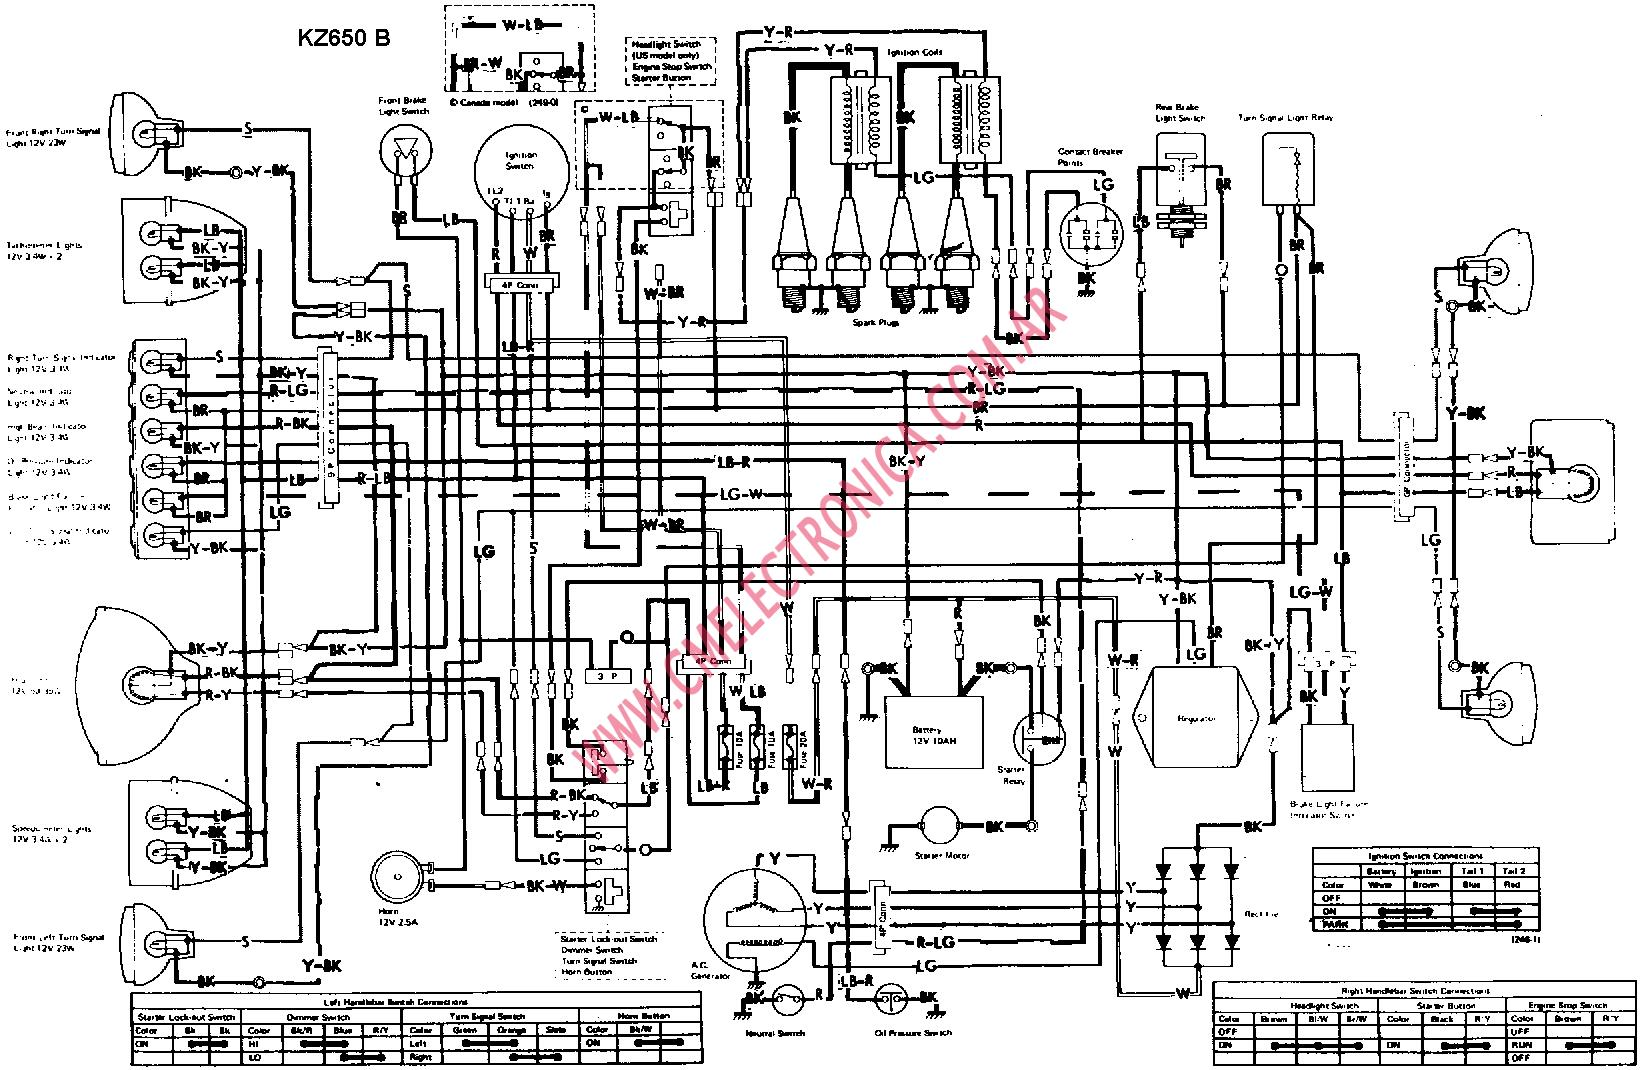 kawasaki prairie 360 4x4 wiring diagram wiring diagram library u2022 rh wiringhero today Kawasaki Motorcycle Wiring Diagrams Kawasaki ATV Wiring Diagram